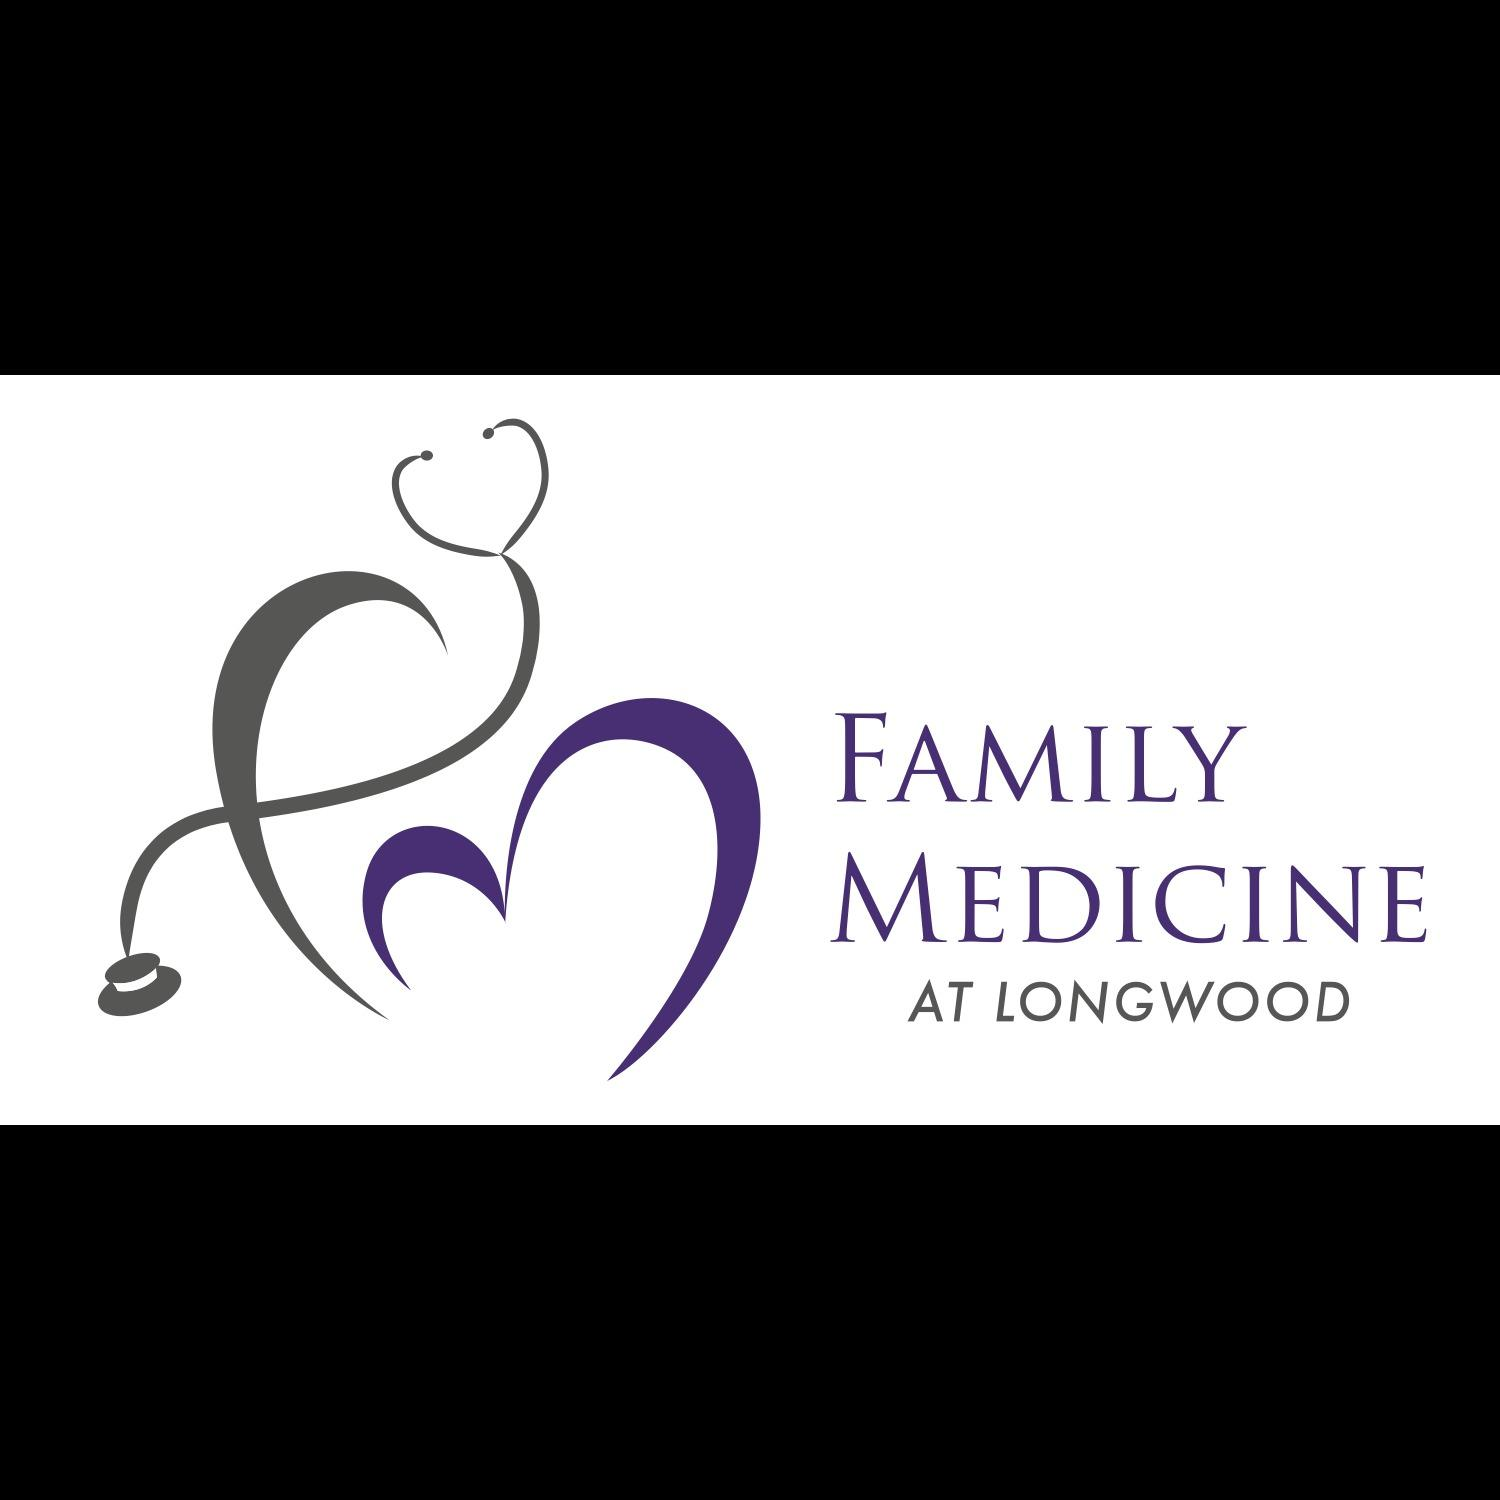 Family Medicine at Longwood